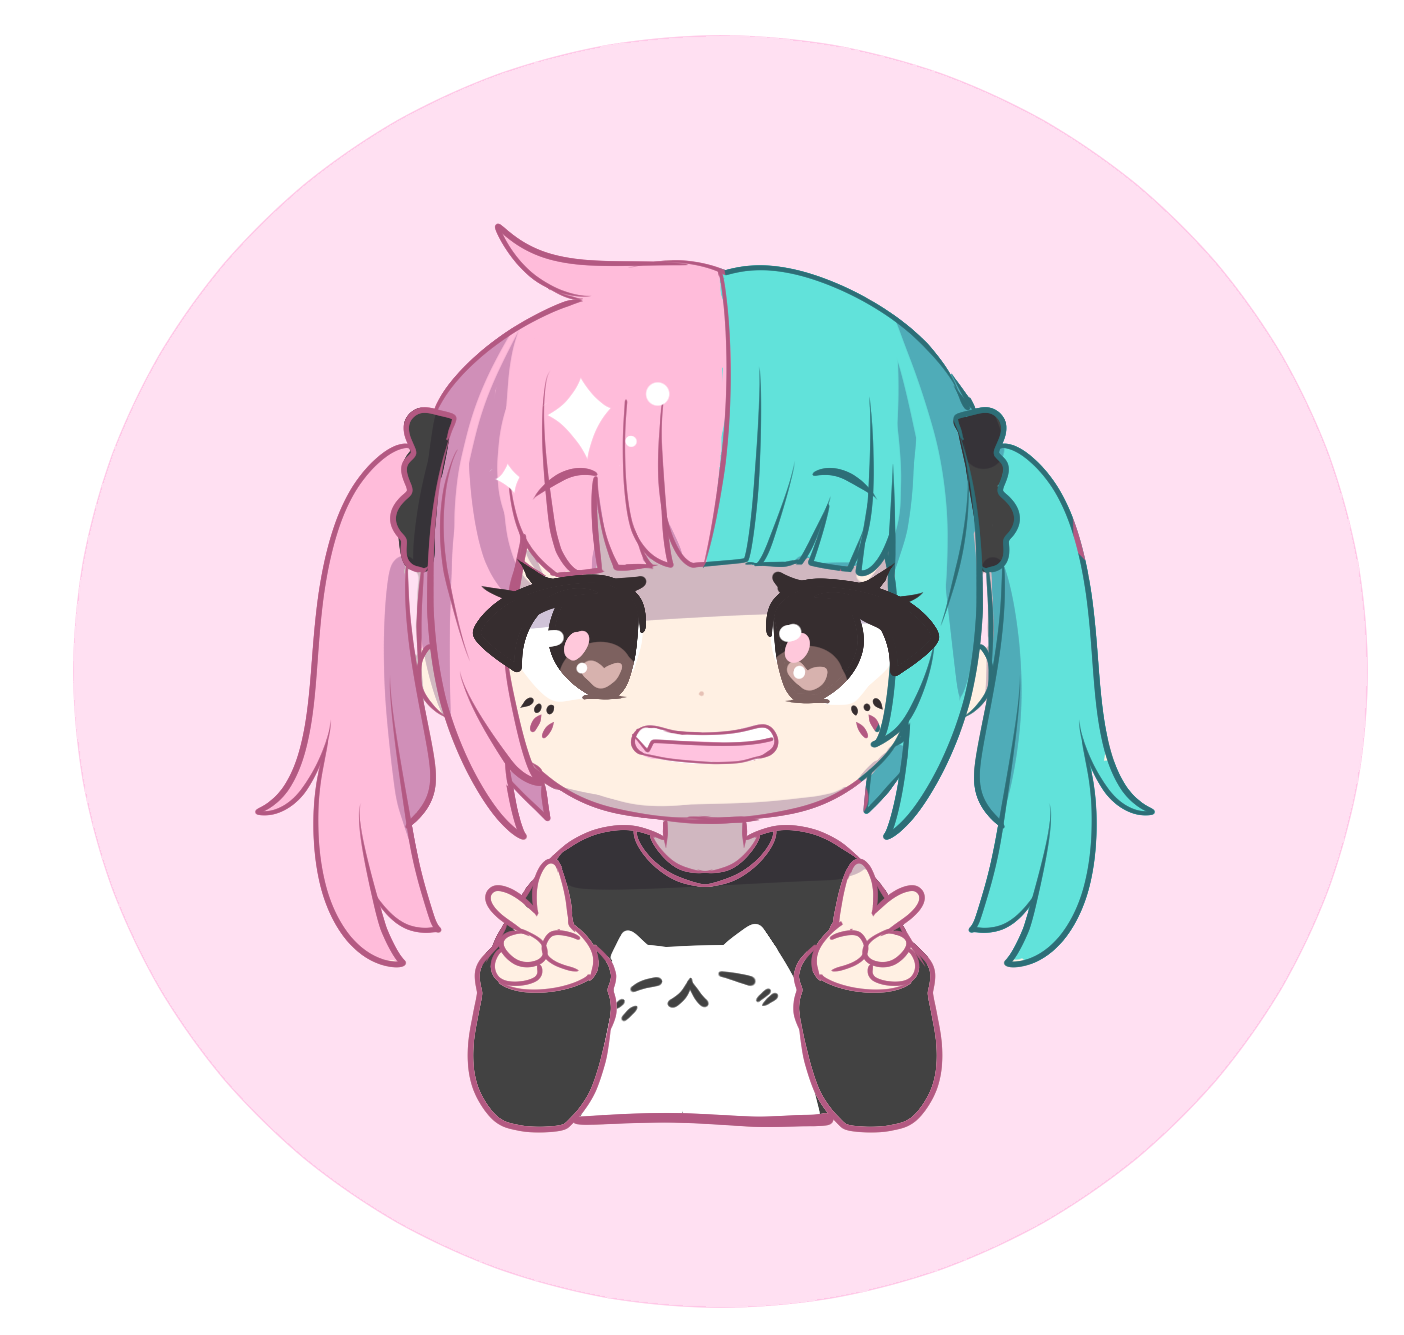 Hello! - Thank you for visiting my online shop! My name is Chrissy, also known as the artist behind Ohayou! Clothing. The brand is my online alias and how I present my clothing, enamel pins and other merchandise.